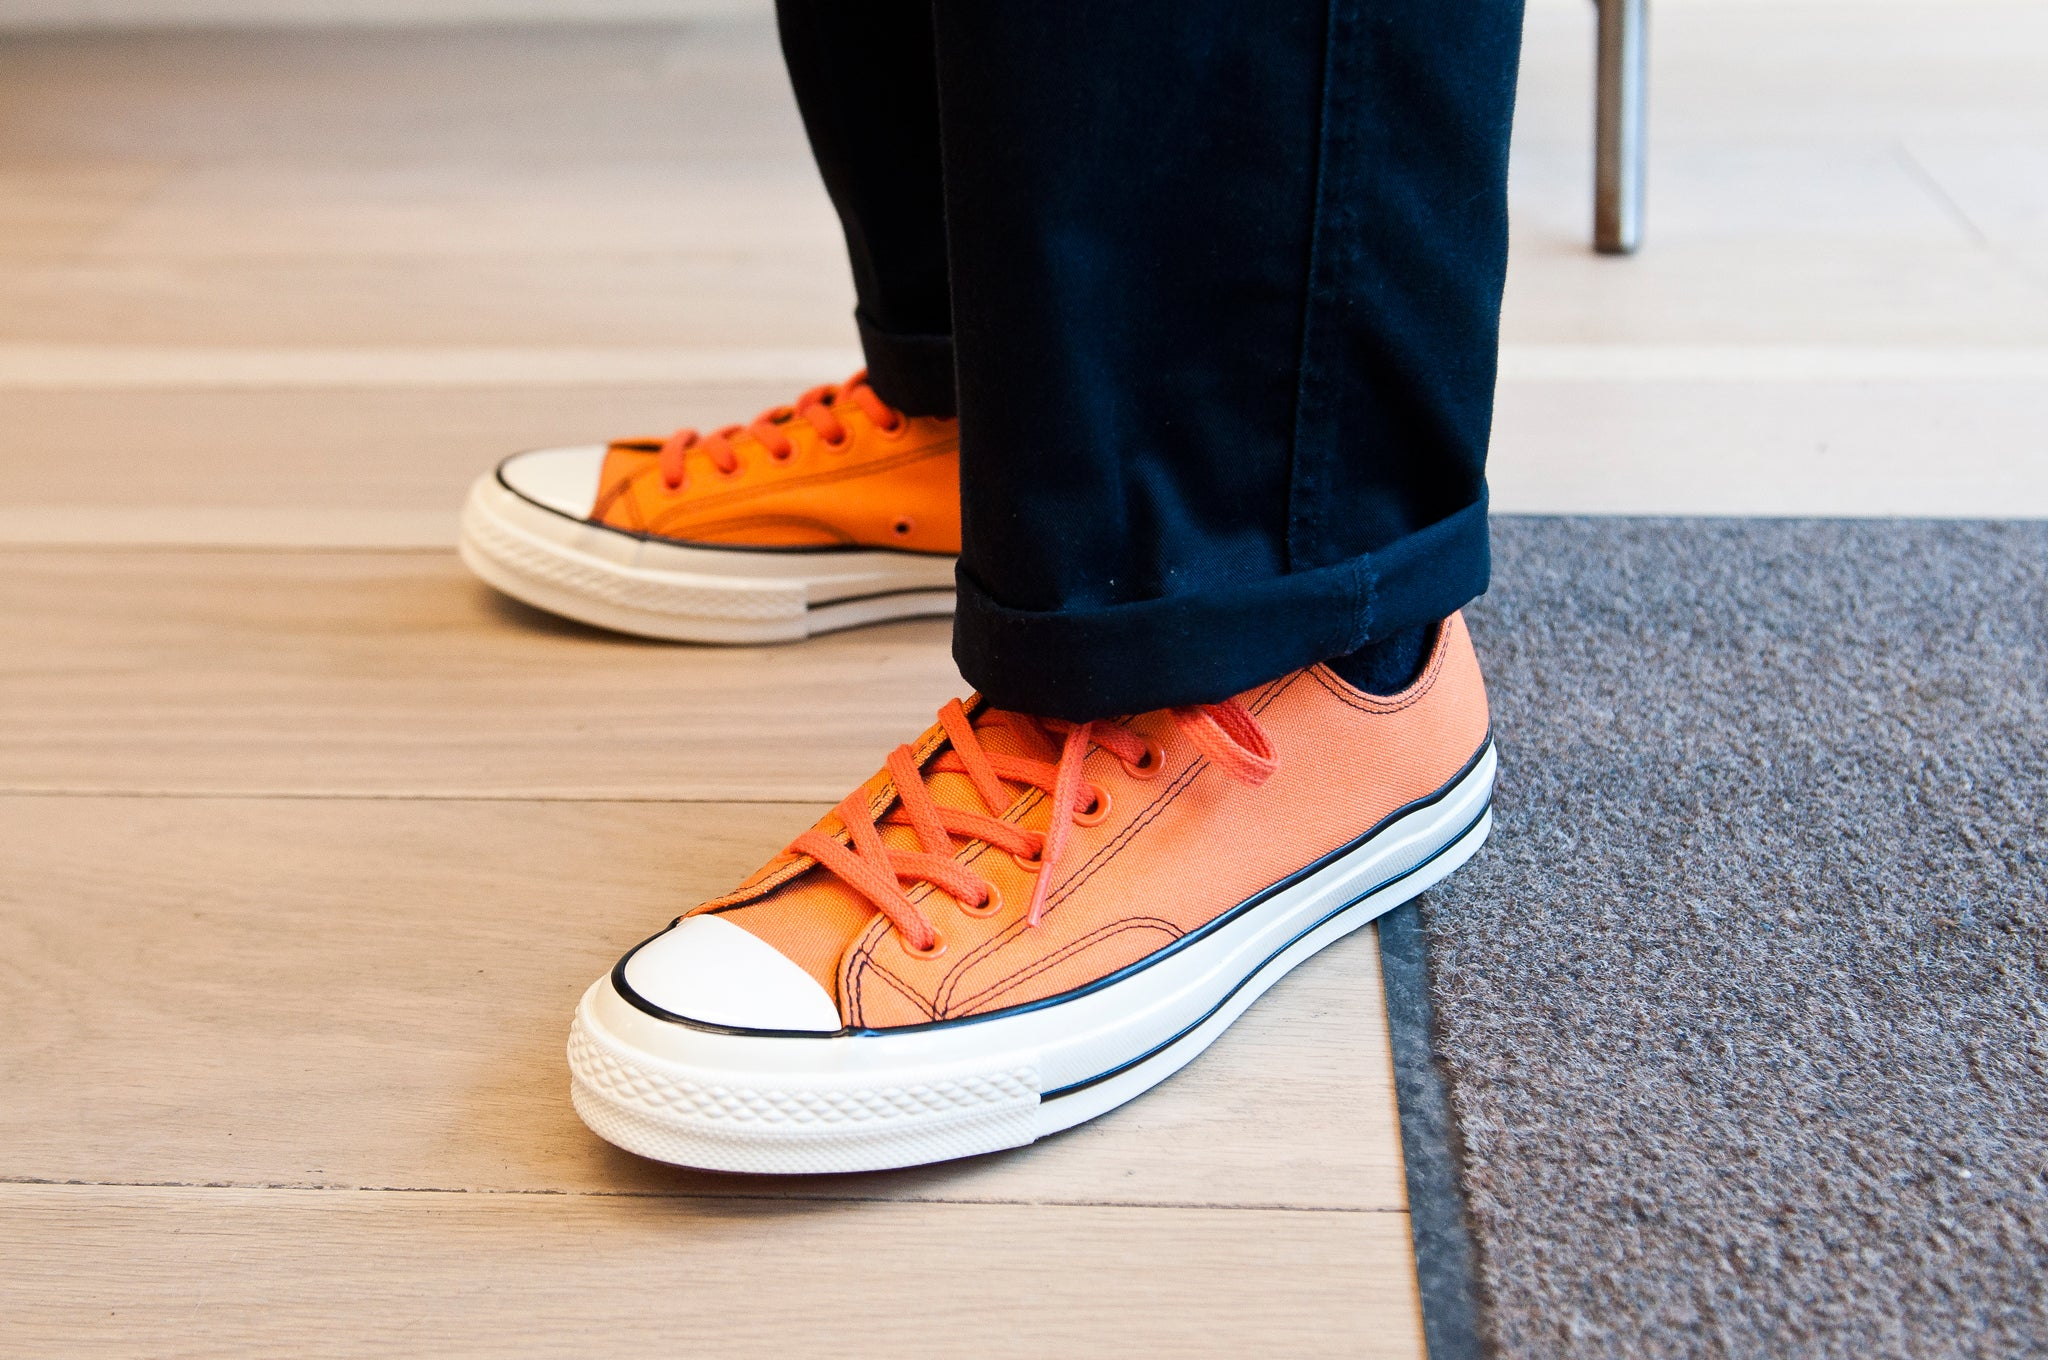 Vince Staples x Convese 1970s Chuck Taylor Collaboration 4